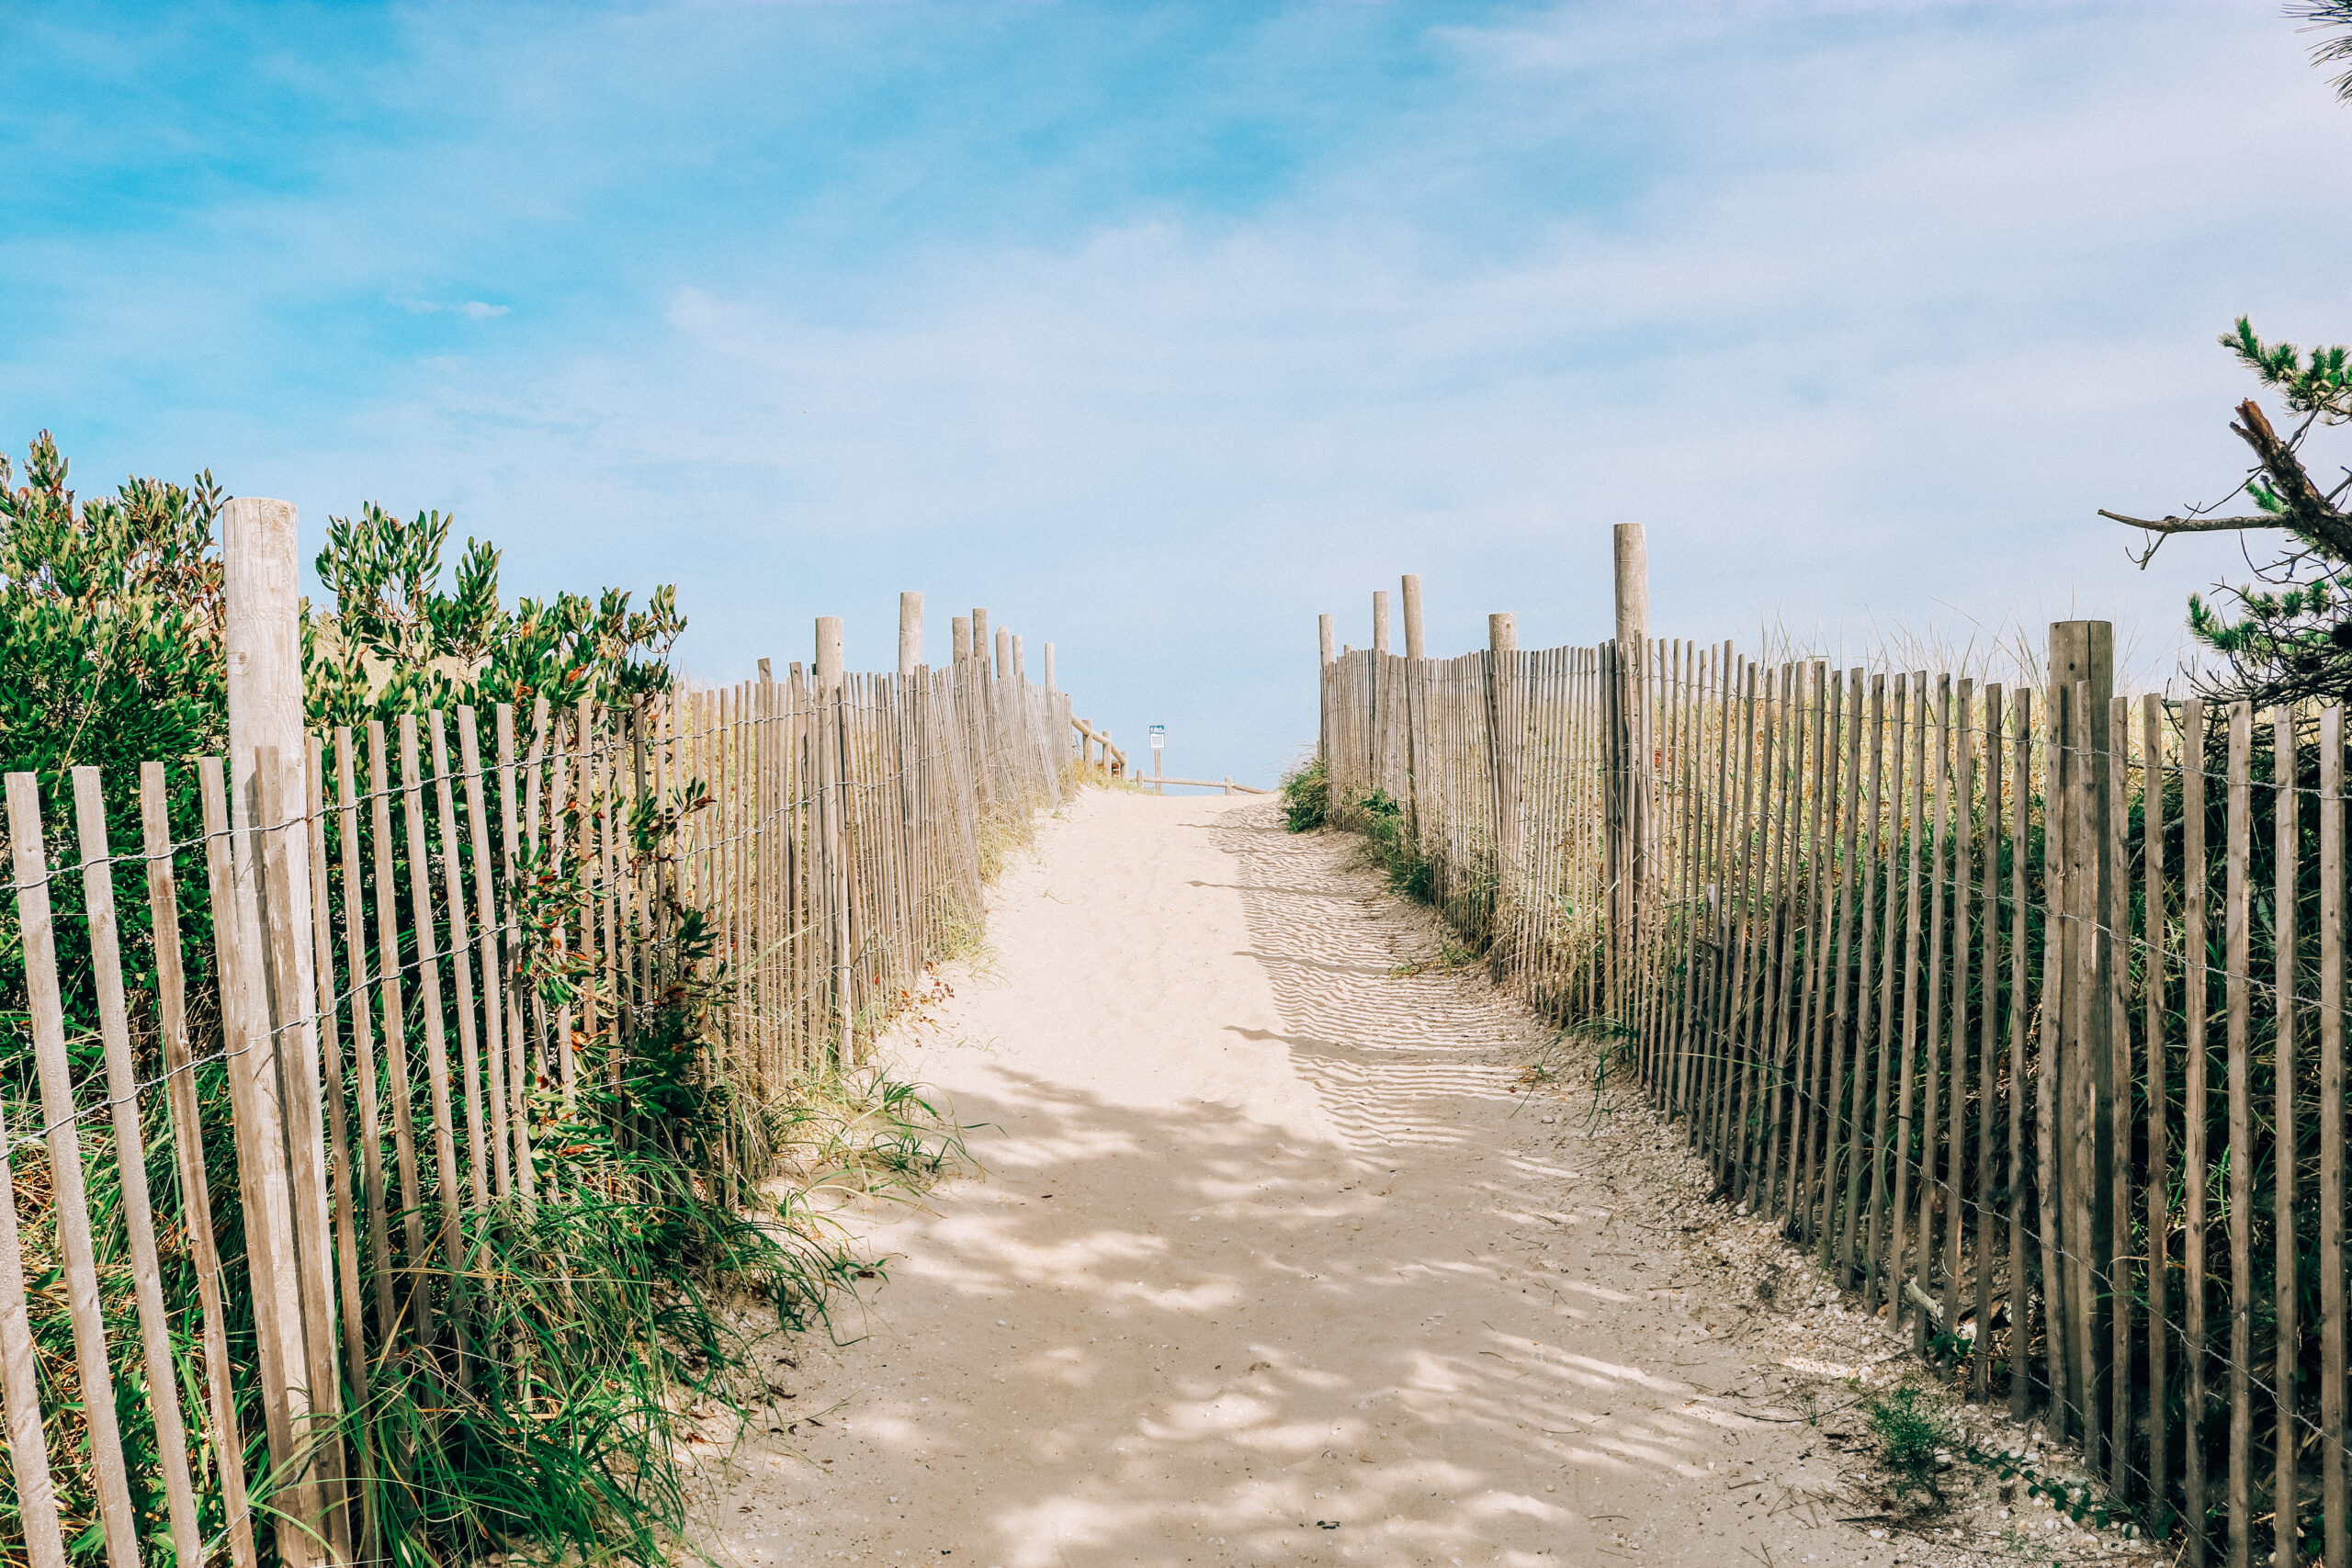 LBI Region Beach for the About Moira page